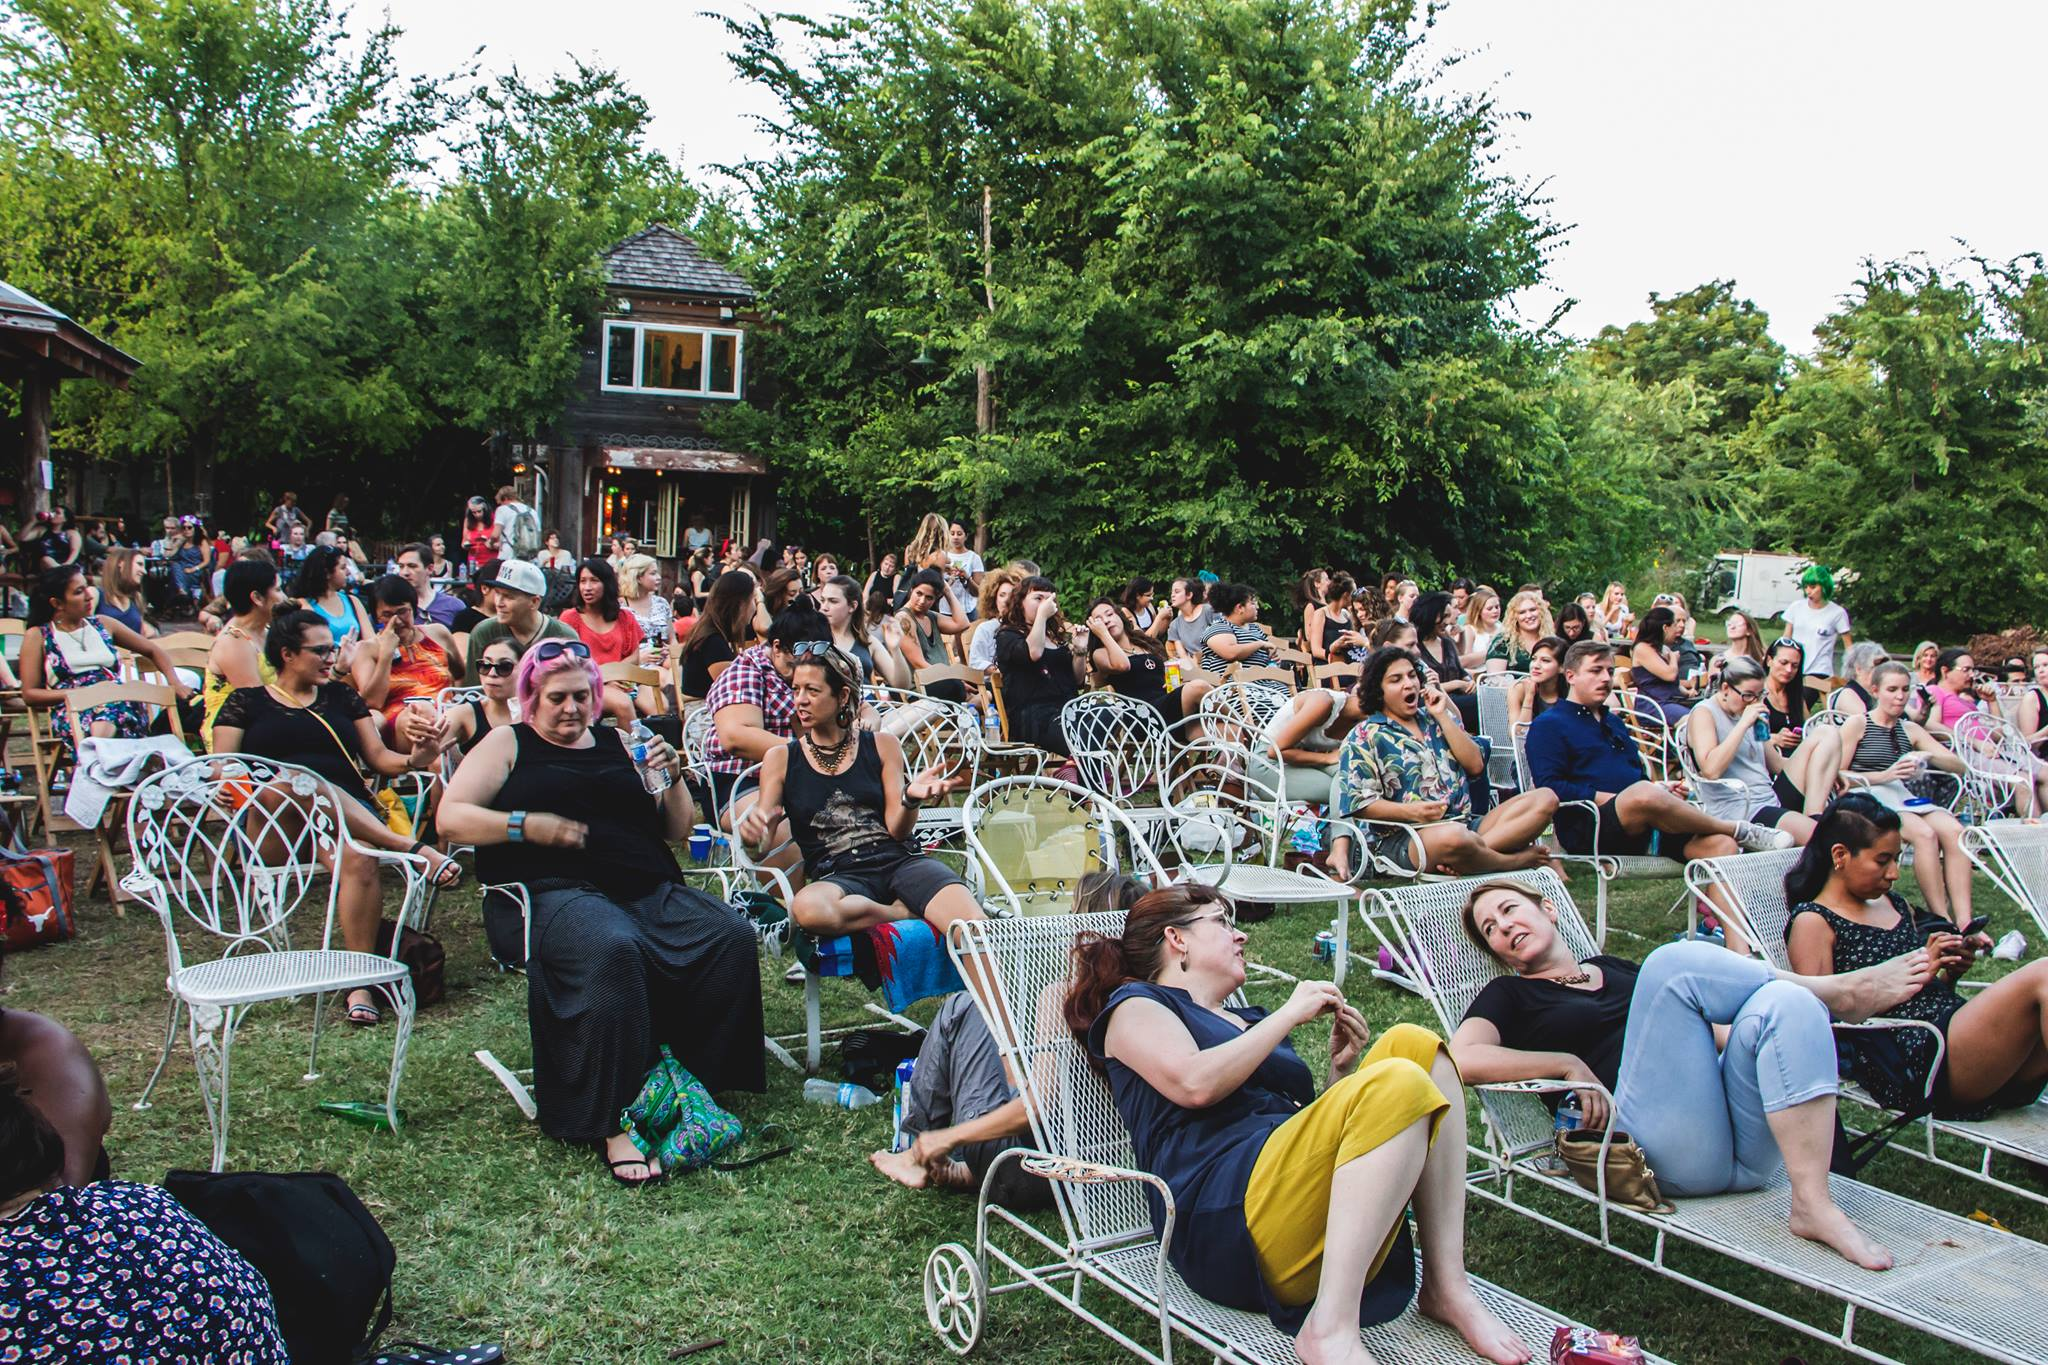 The crowd at the Babes Fest summer film screening in Austin. Photo by Tess Cagle